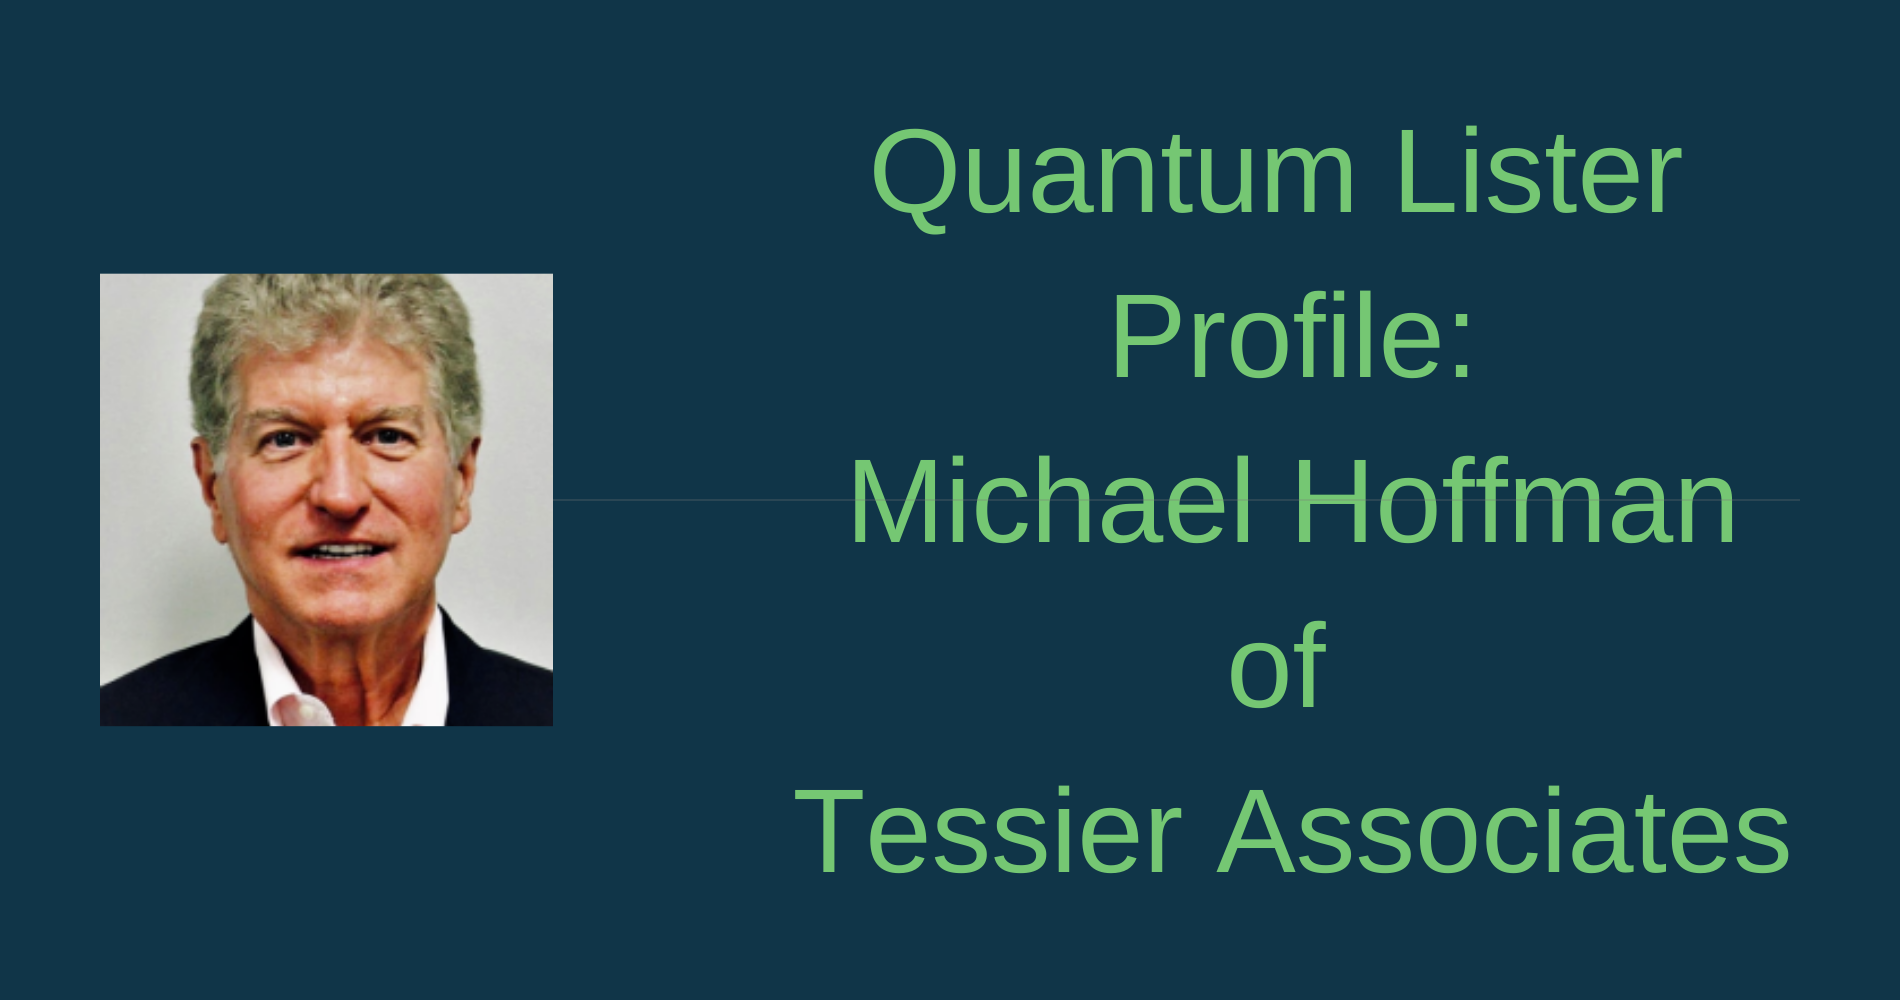 Quantum Lister Profile: Michael Hoffman of Tessier Associates